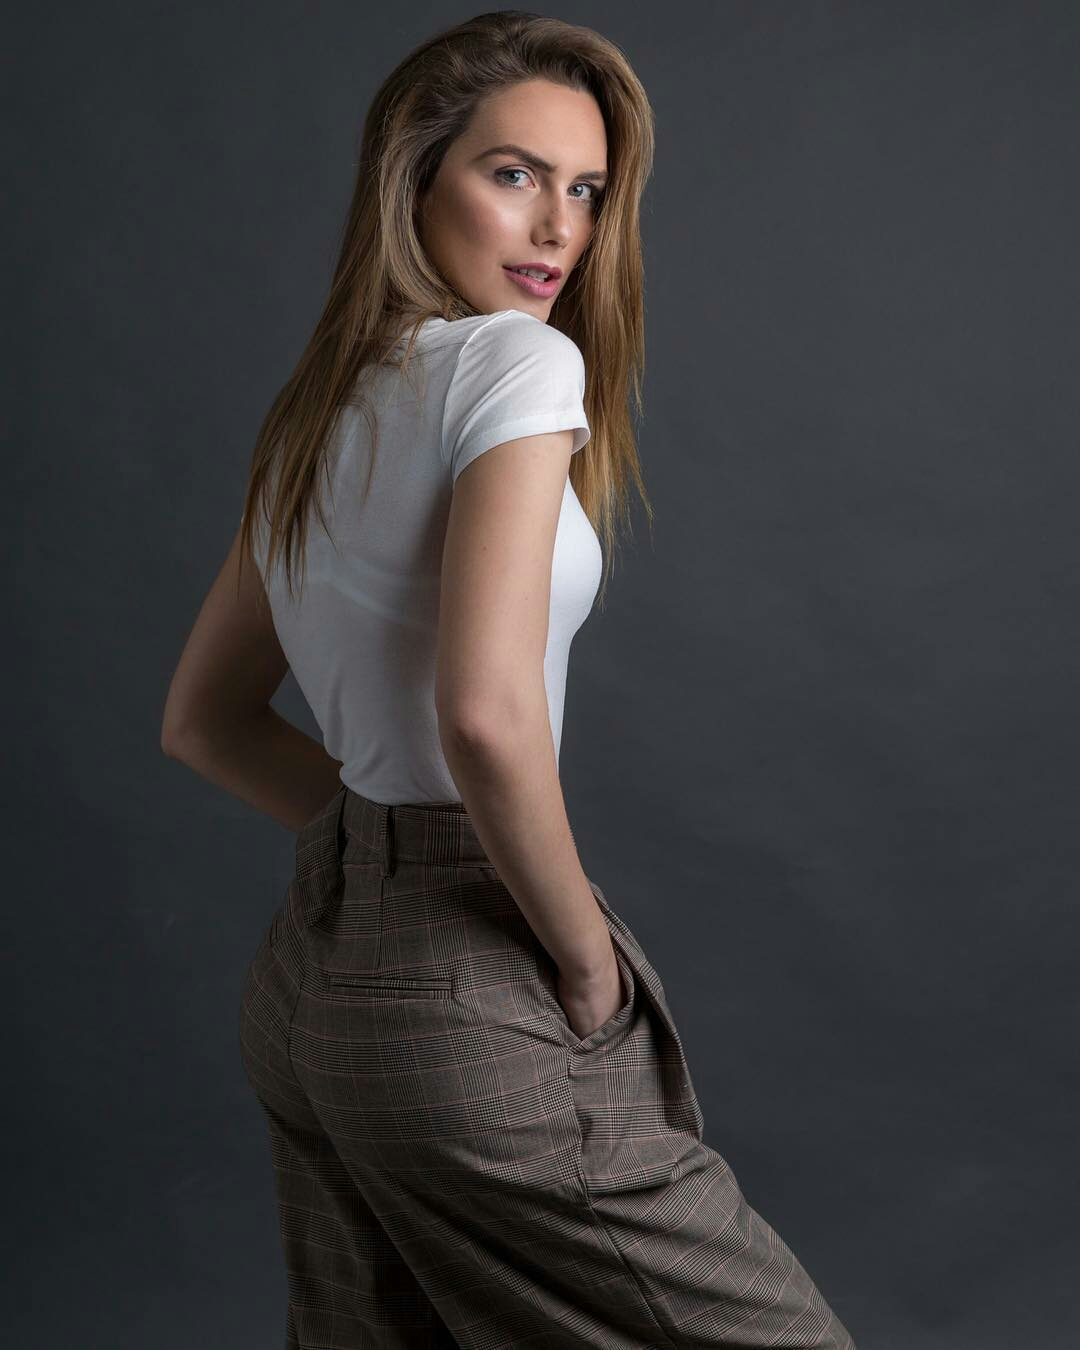 Angela Ponce - Most Beautiful Spanish Transsexual Model